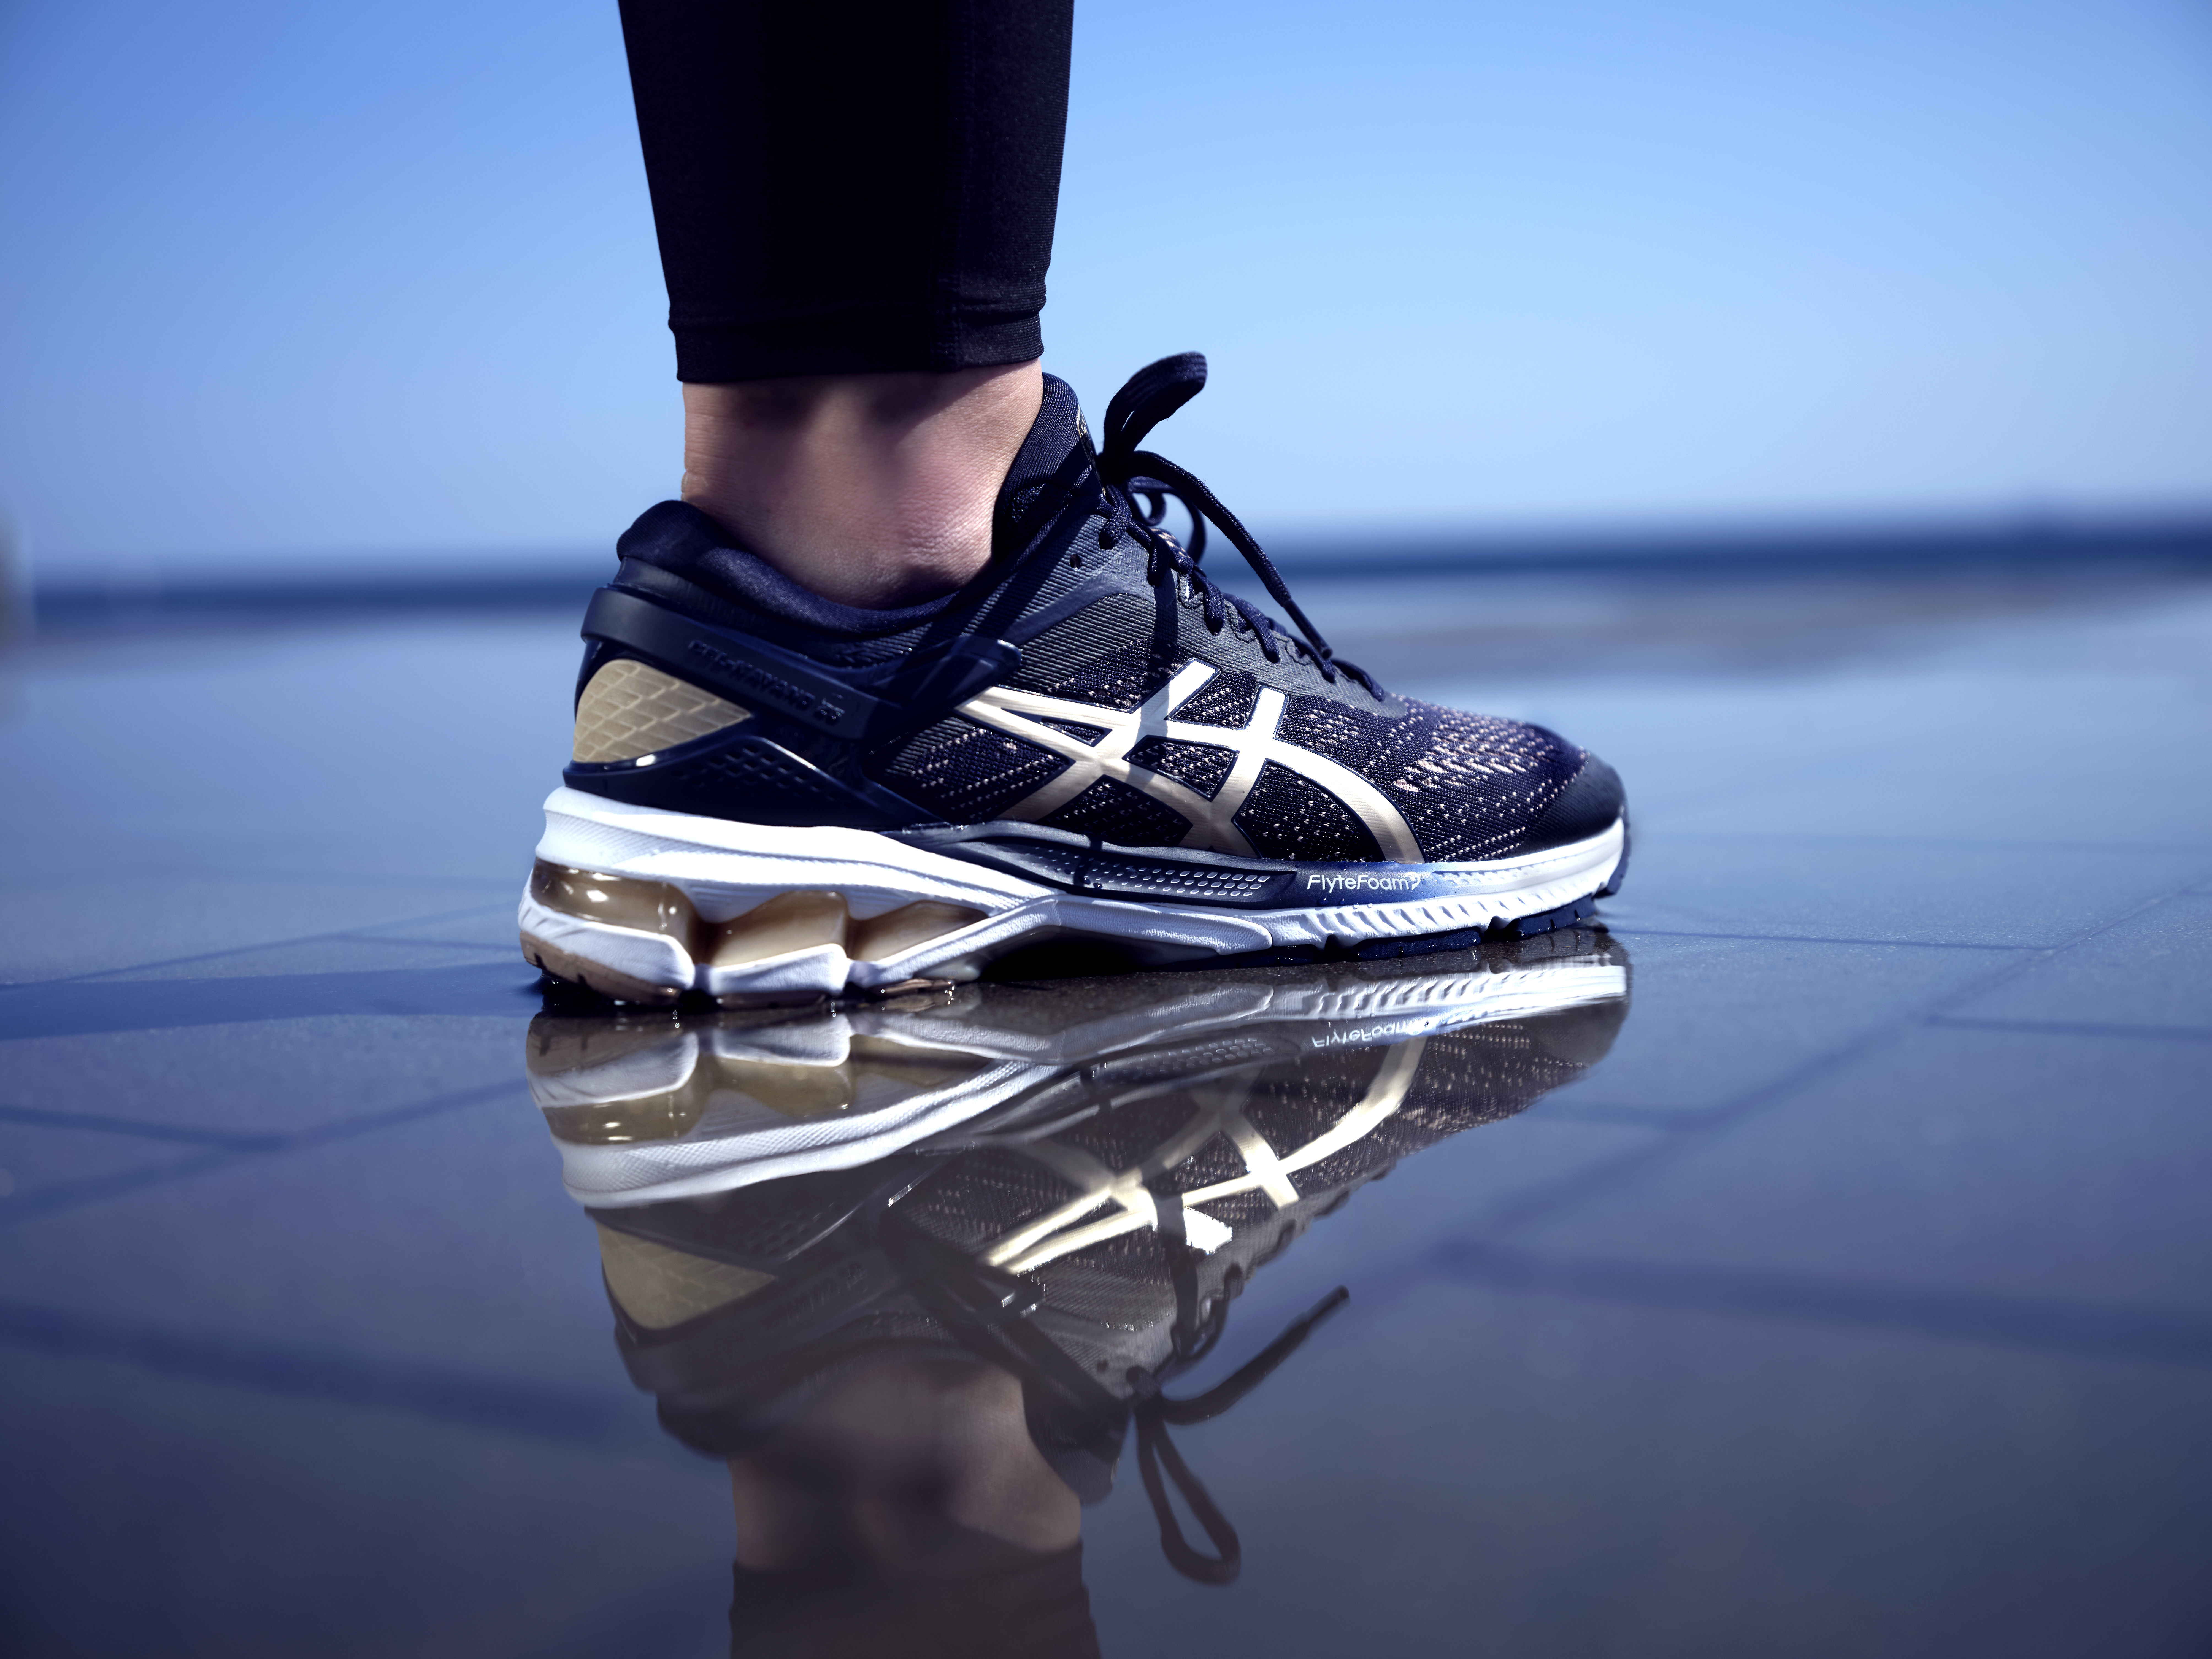 ASICS GEL Kayano 26 Running Shoes | The Athlete's Foot